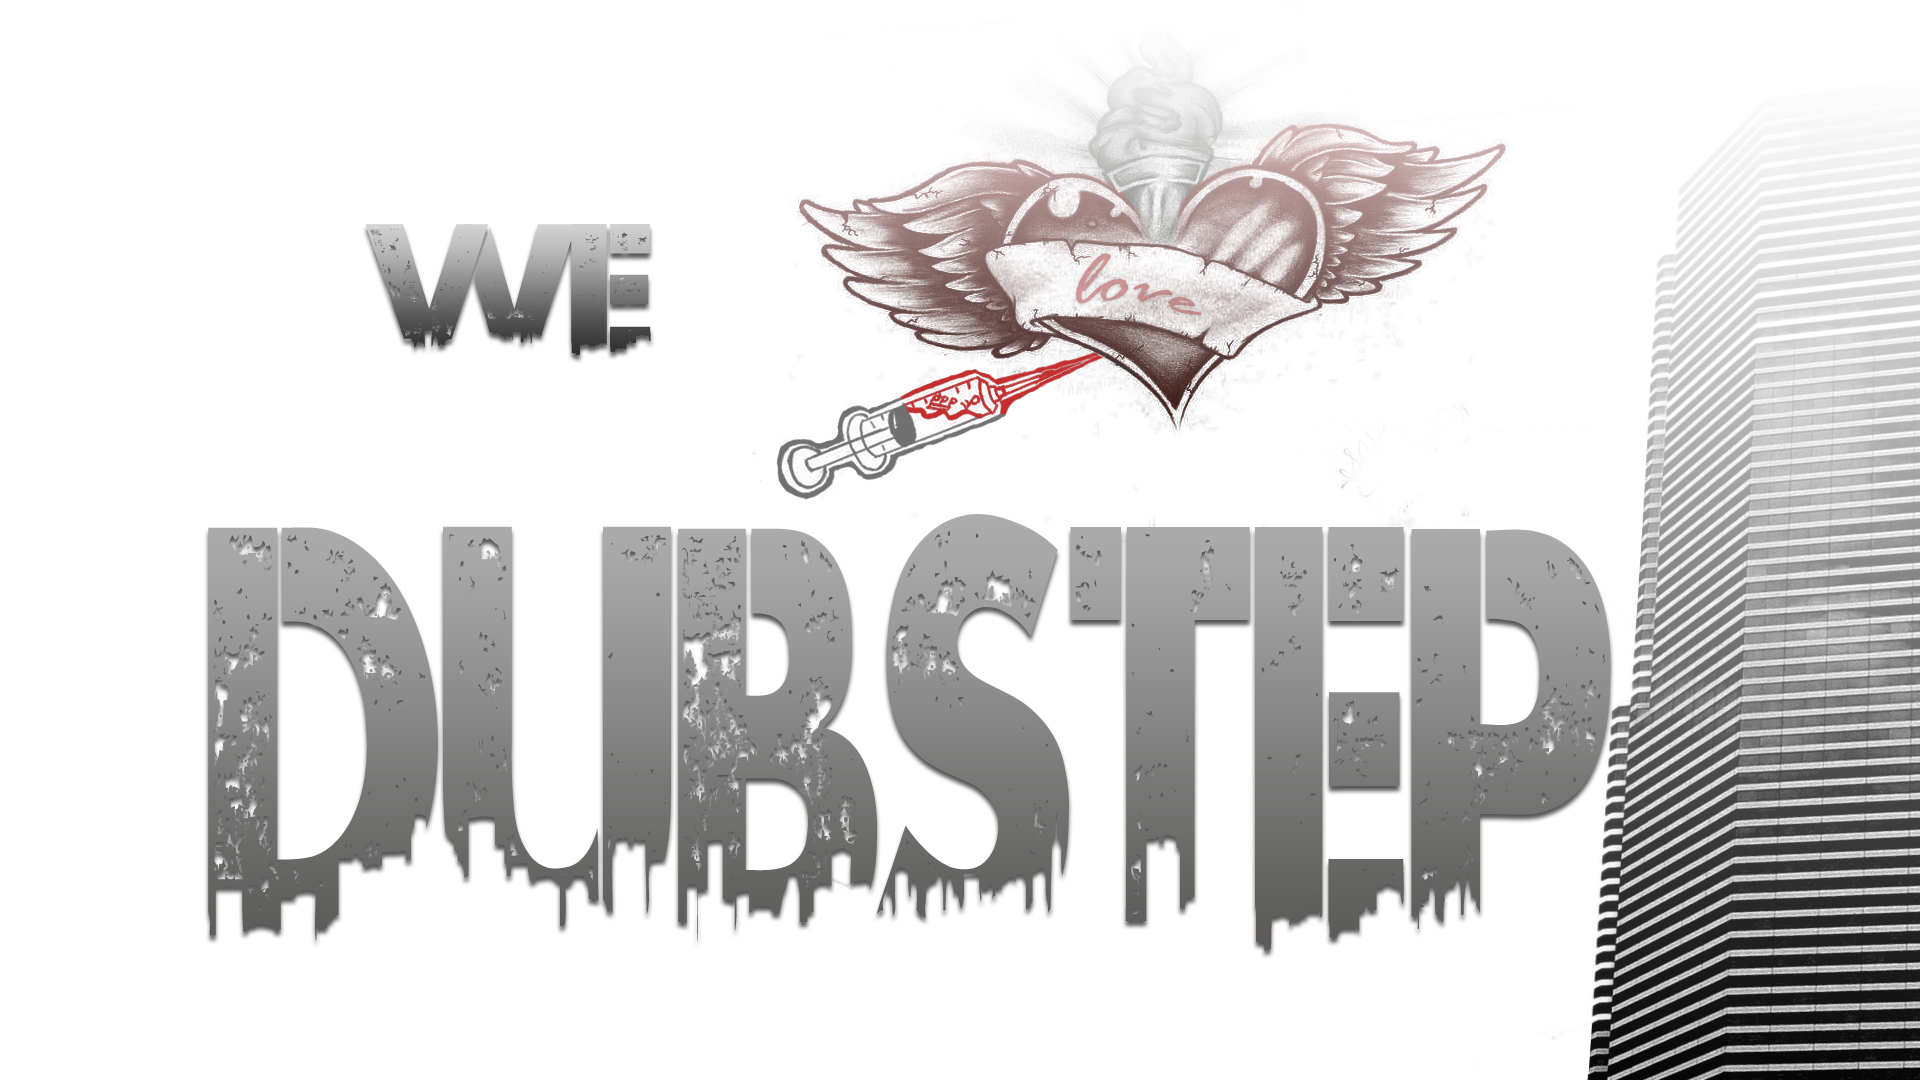 we_love_dubstep_by_kiyoshin-d4aogde.jpg